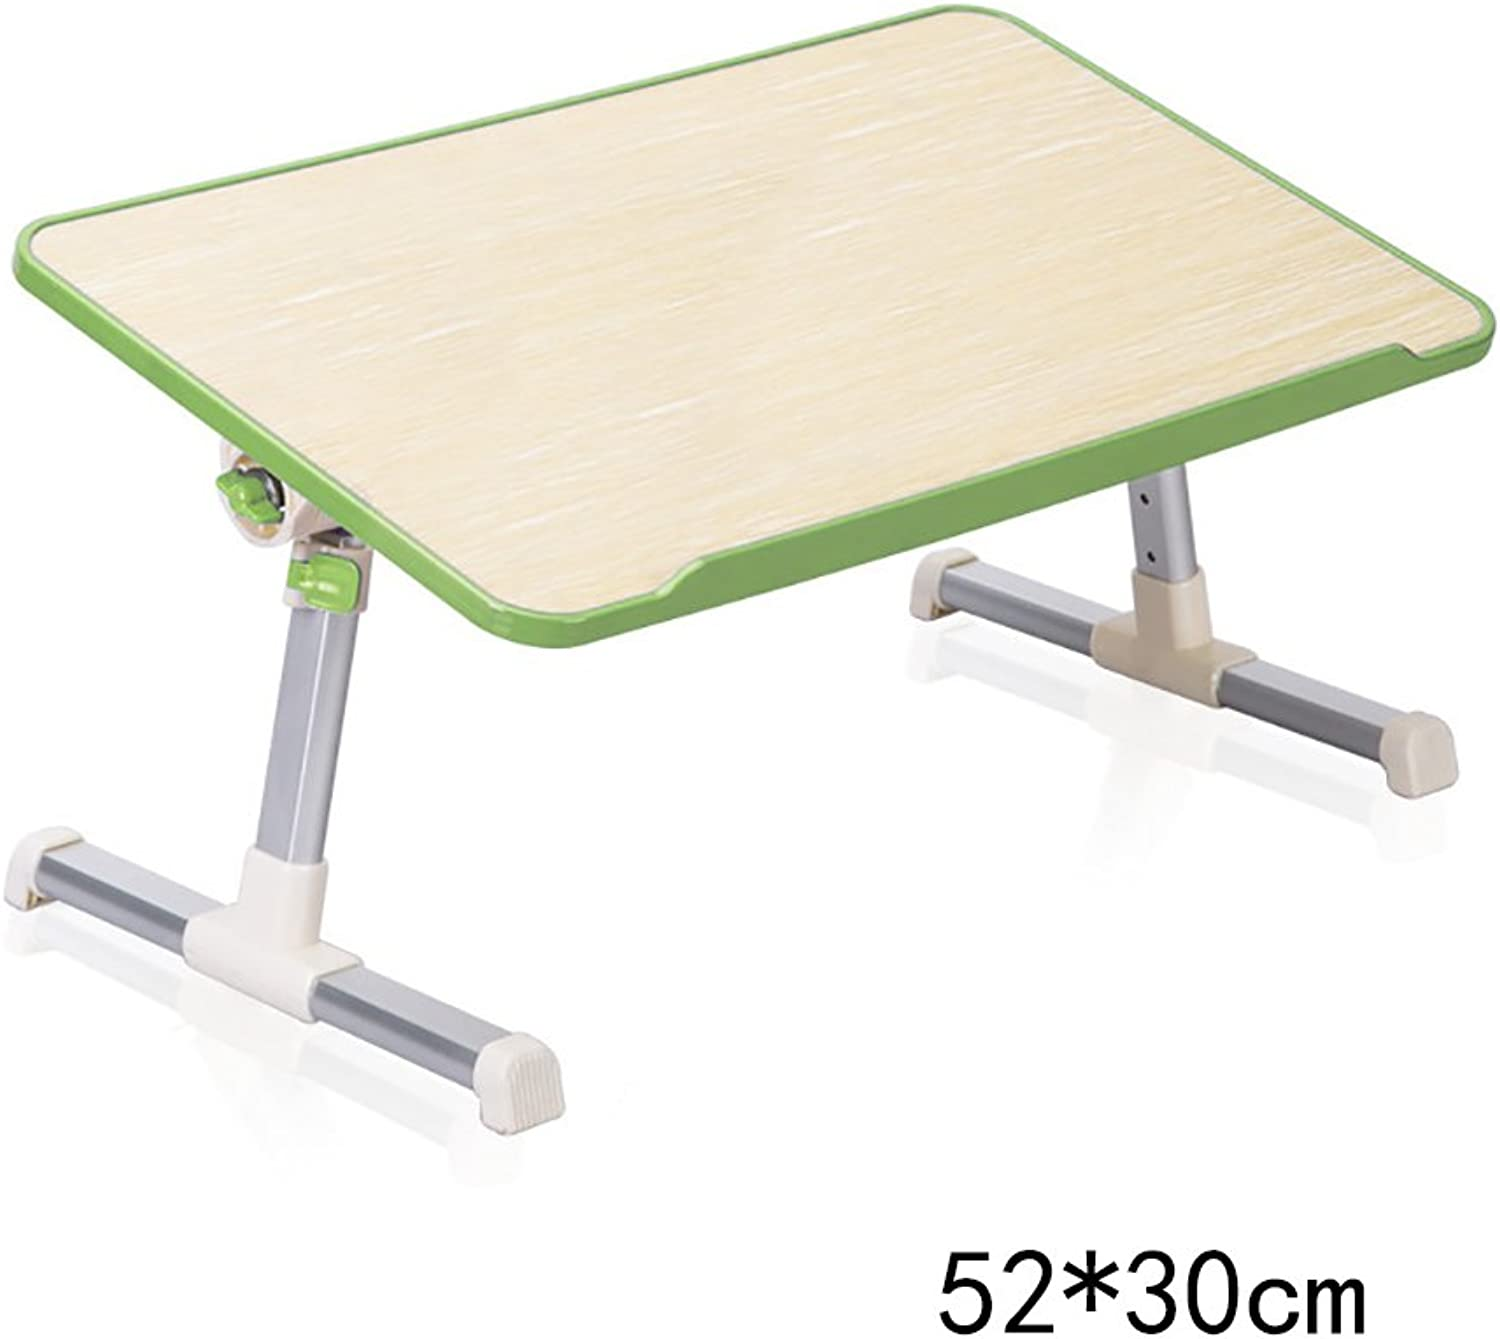 HAIPENG Laptop Tables Dormitory Learning Desk Simple Lazy Little Table Household Folding Tables with Radiator (3 colors, 2 Styles Optional Optional) (color   Green, Style   A)